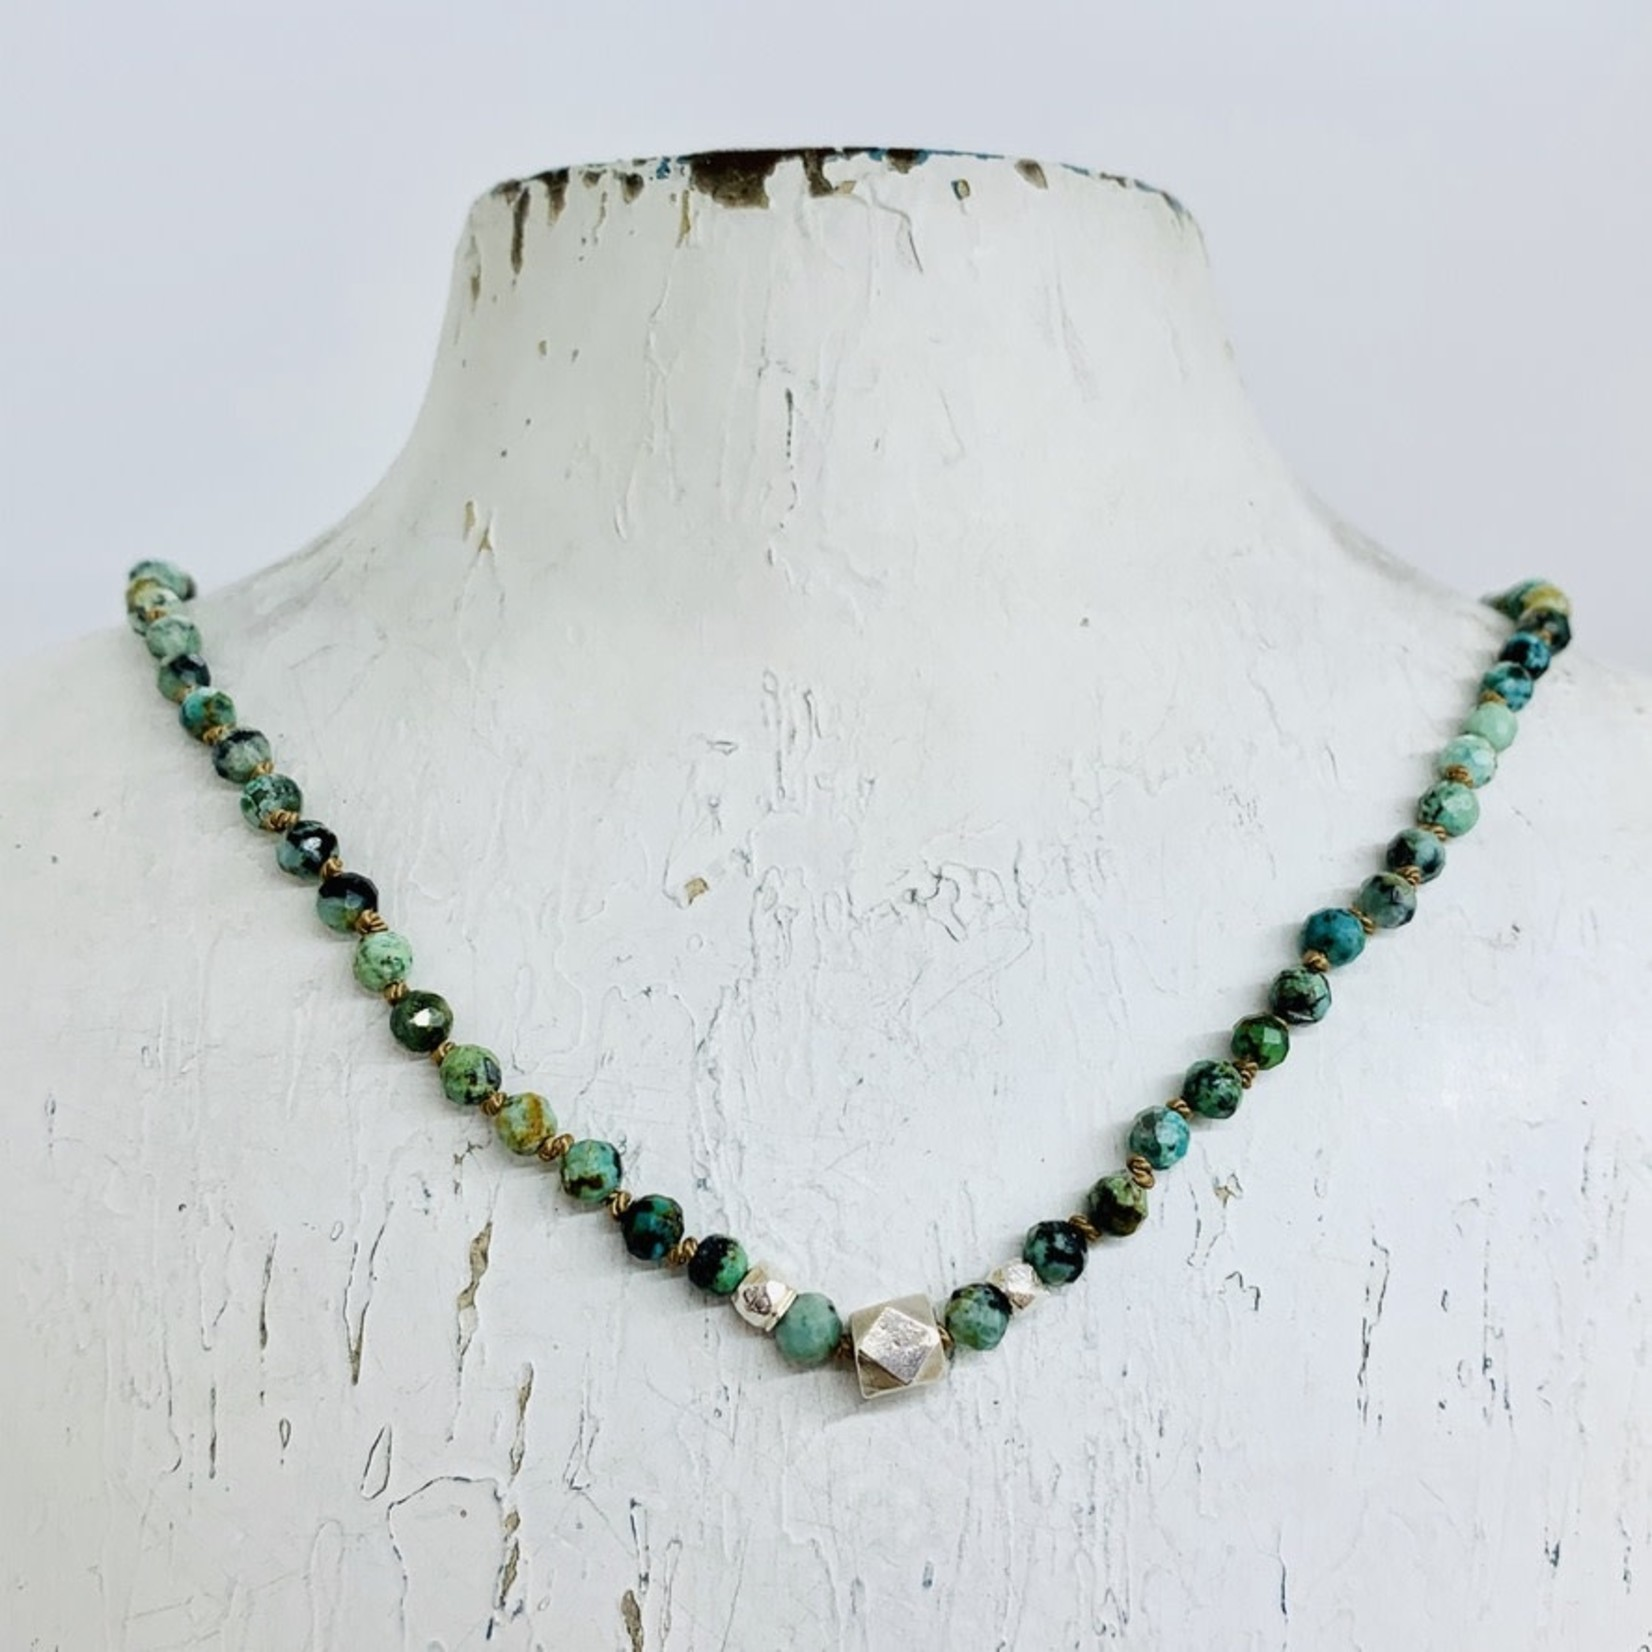 Handmade necklace with african turquoise, 3 faceted silver knotted on natural silk